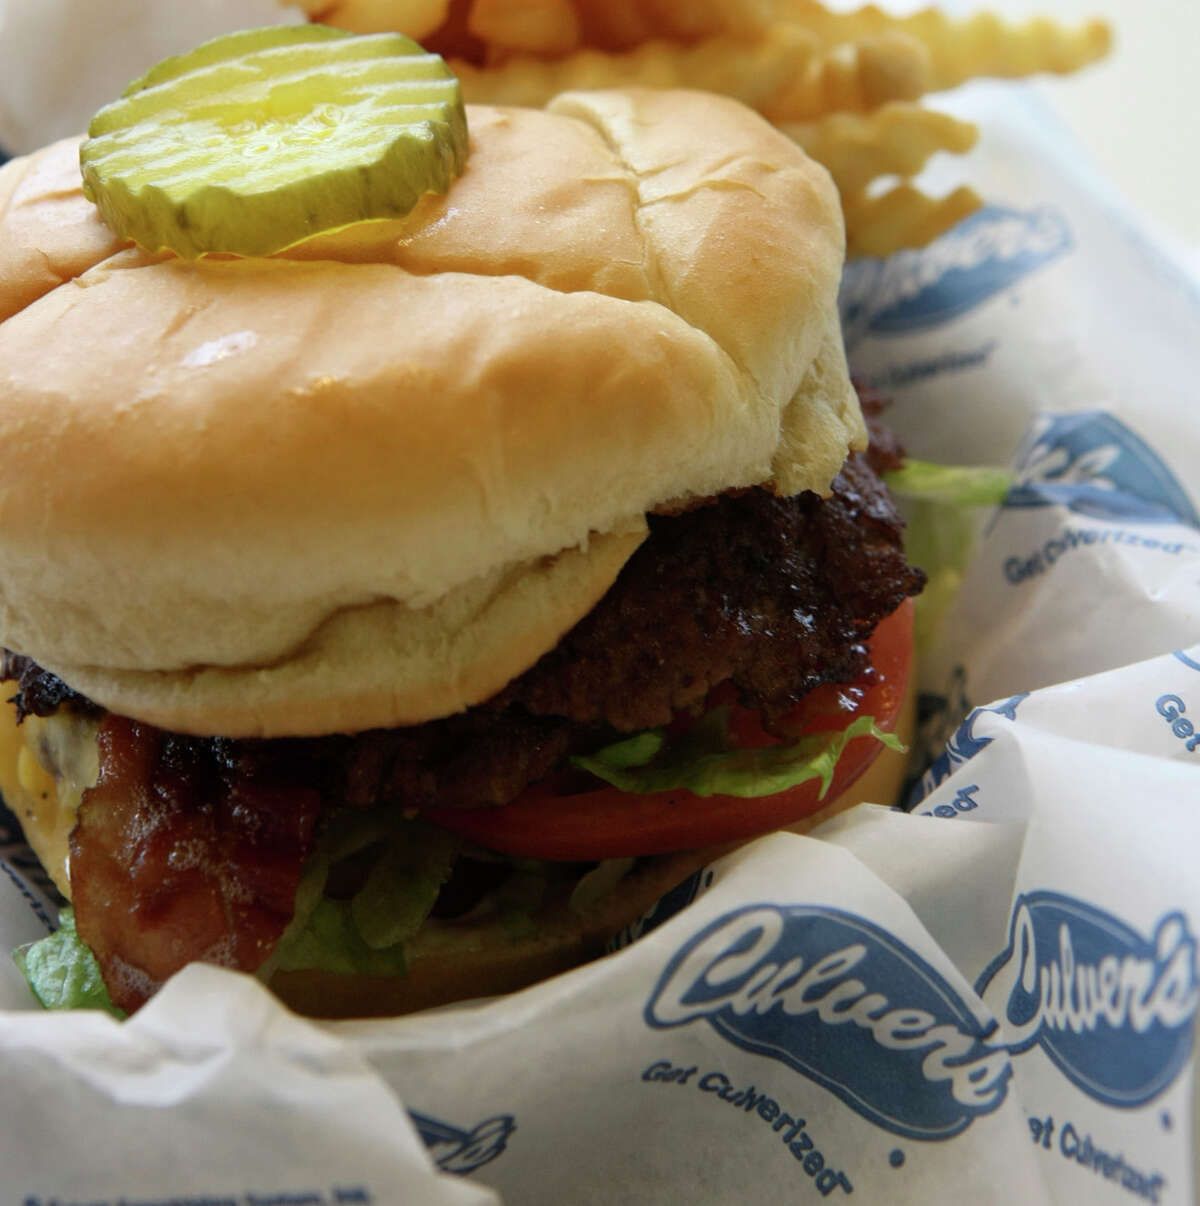 Burgers - Curb Appeal 1. In-N-Out - 68% 2. Culvers - 61% 3. Smashburger - 59% 4. Five Guys Burgers and Fries - 58% 5. Whataburger - 57% Source: Market Force Information